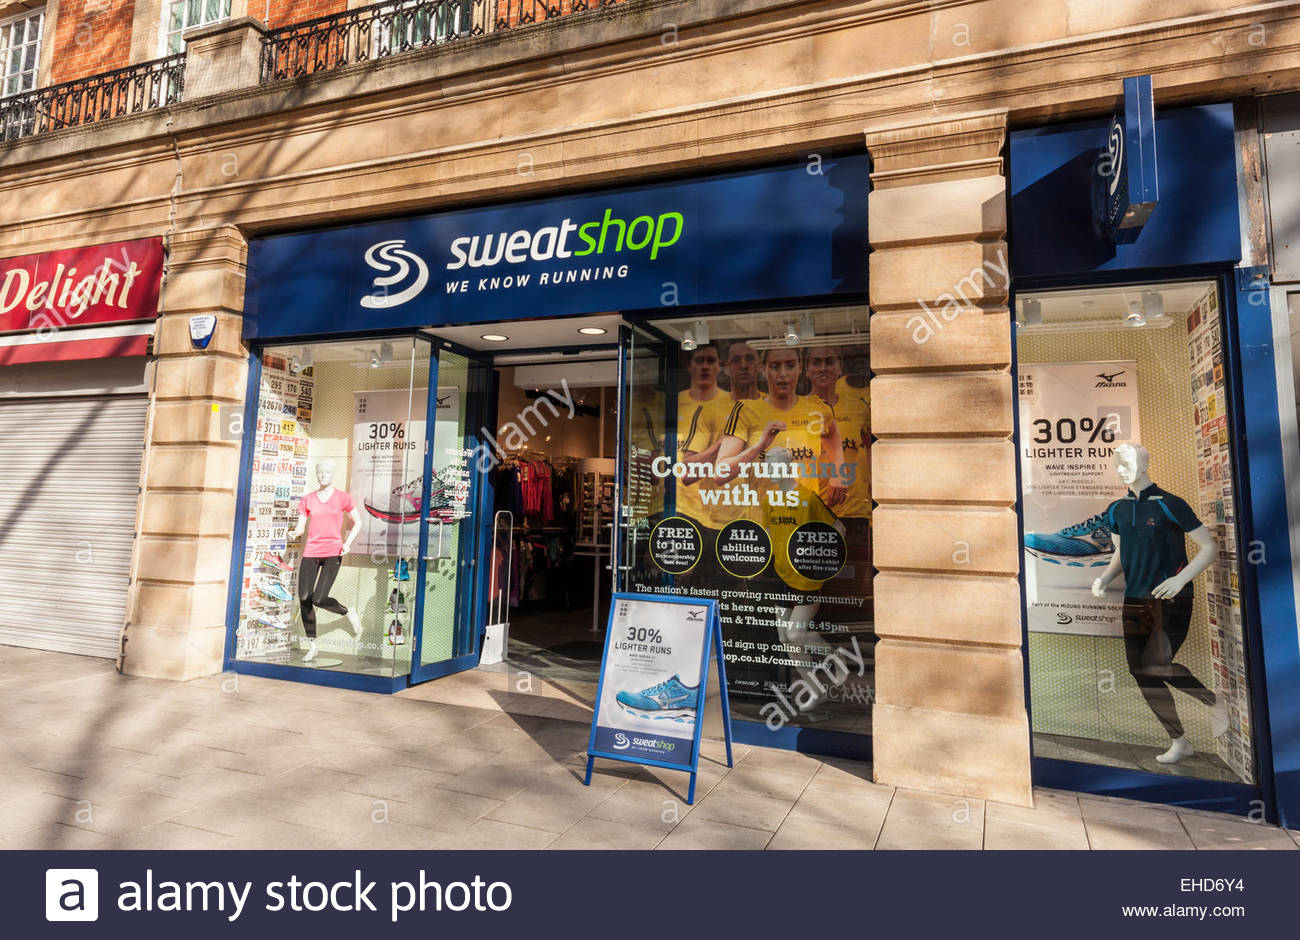 Sweatshop store in Peterborough, Cambridgeshire, UK - Stock Image